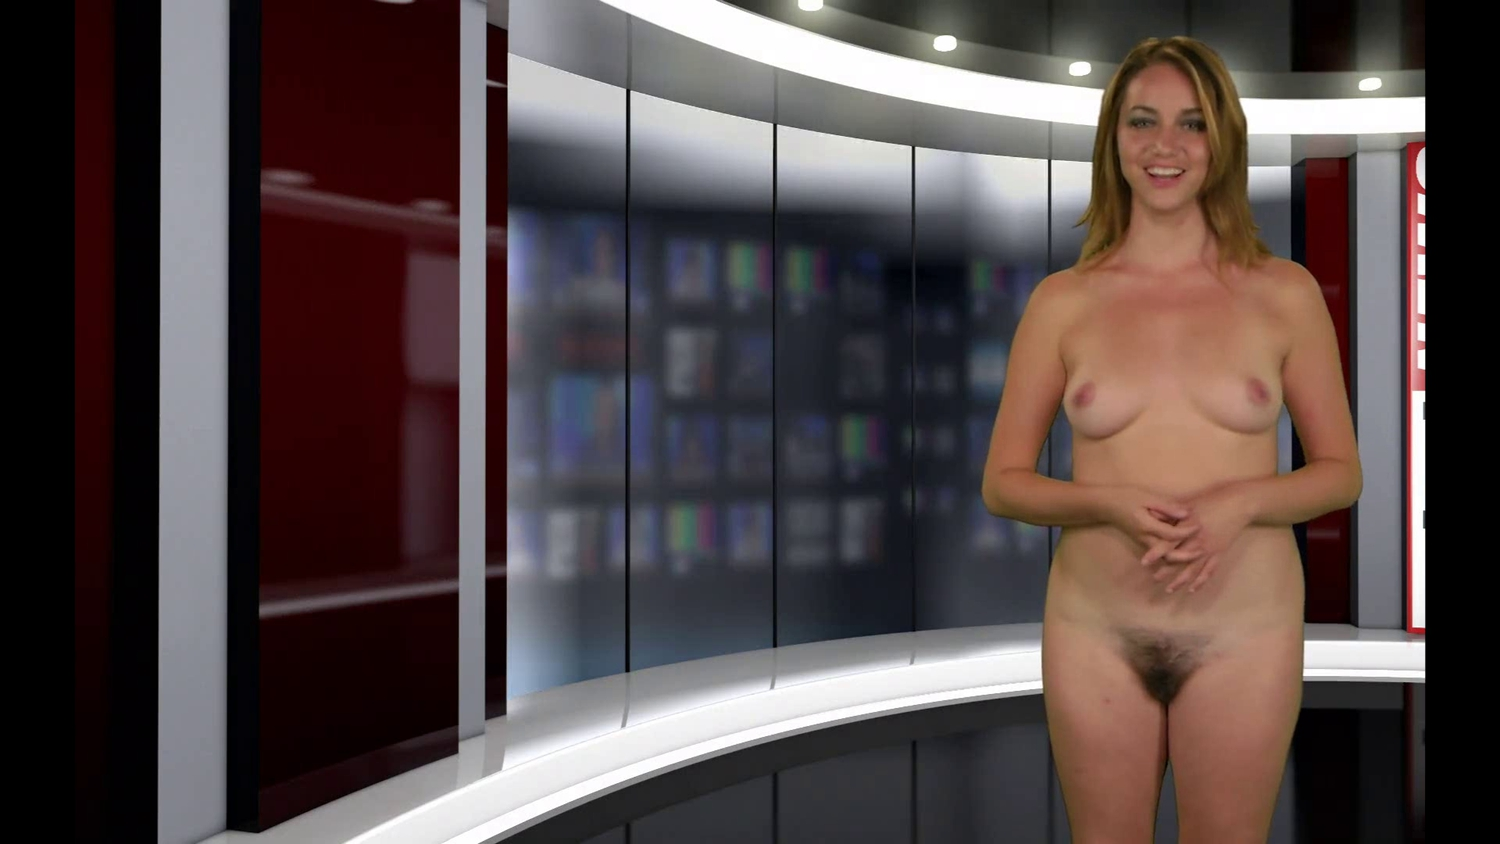 Naked news video nude picture